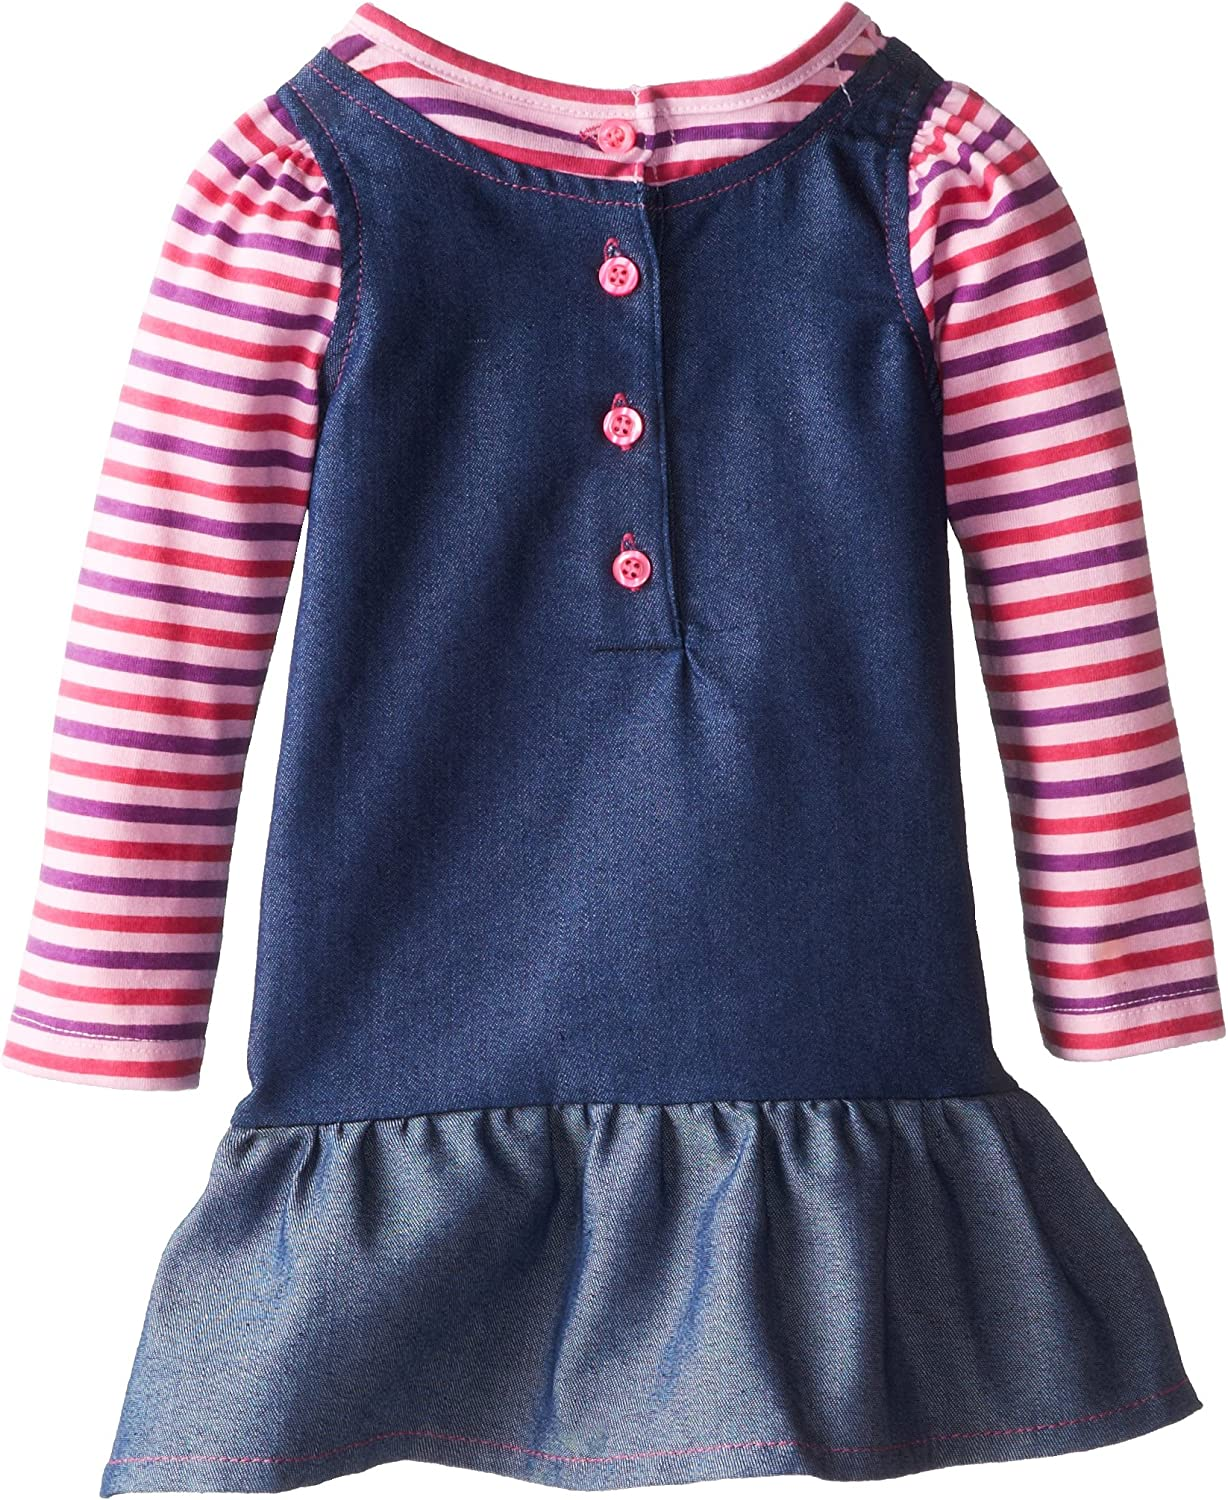 Kids Headquarters Baby Girls Long Sleeve Dress with Butterfly